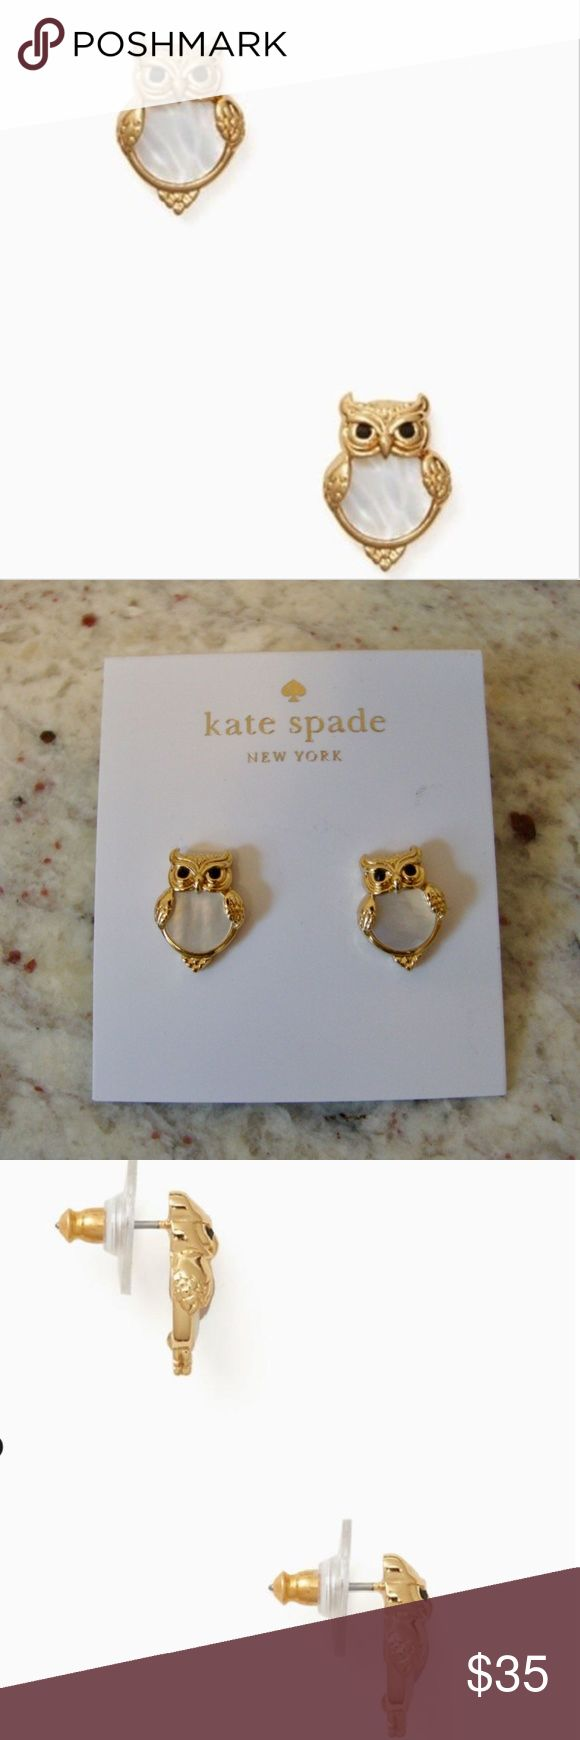 """Kate Spade Into The Woods Owl Stud Earrings Kate Spade Into The Woods Owl Stud Earrings Gold & Mother-of-Pearl it's always a good time to add a little shine. MATERIAL bronze and gold plated metal with enamel coating mother of pearl and glass stones FEATURES 14-karat gold filled posts style # o0ru1475 DETAILS drop length: 0.5"""" width: 0.5"""" weight: 3.03g kate spade Jewelry Earrings"""